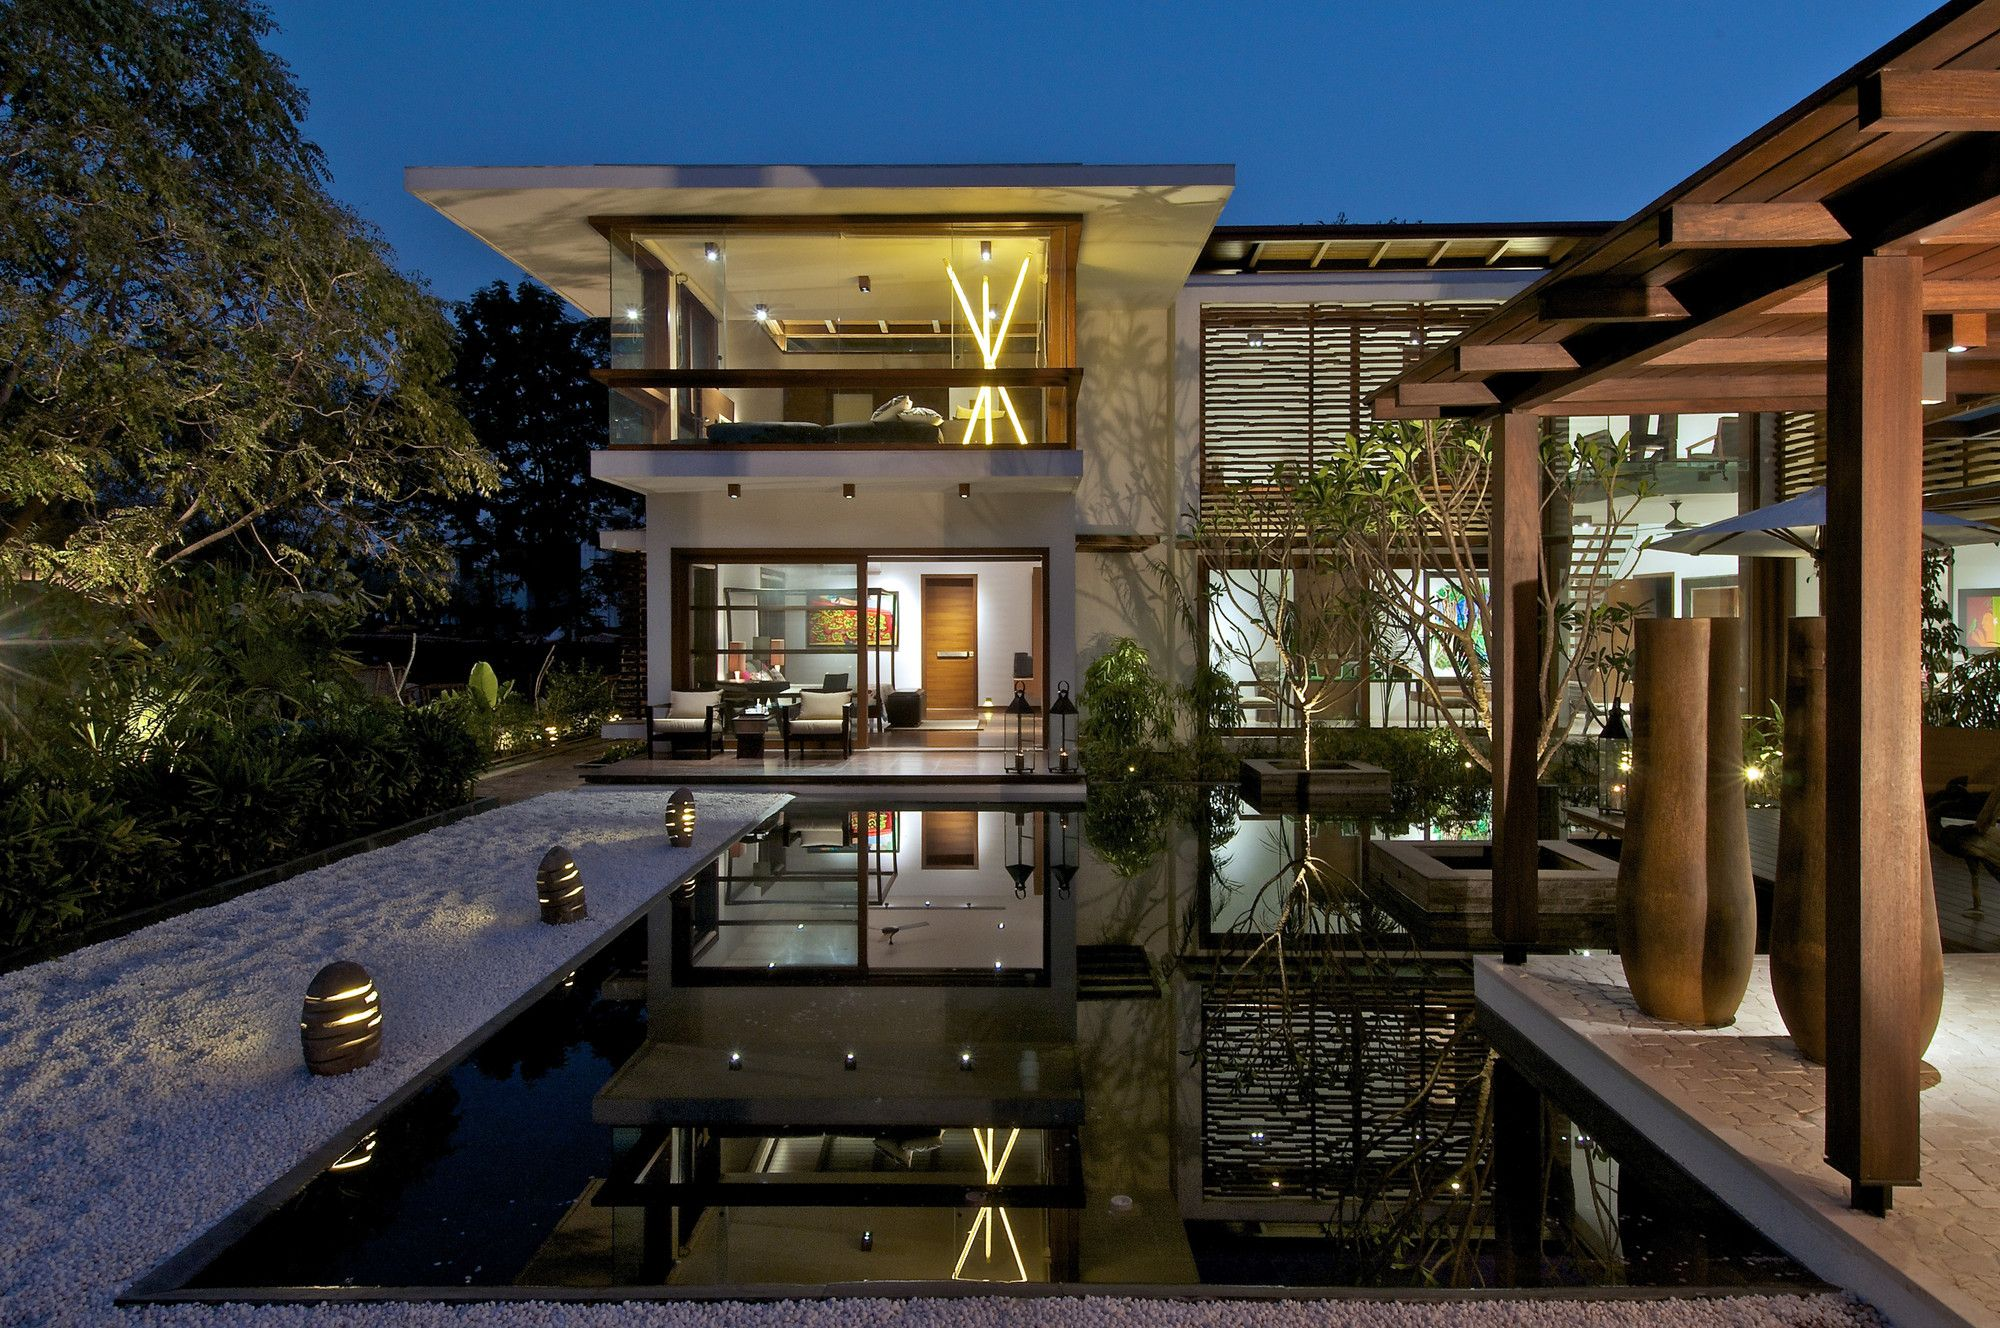 The Courtyard House Hiren Patel Architects Architecture